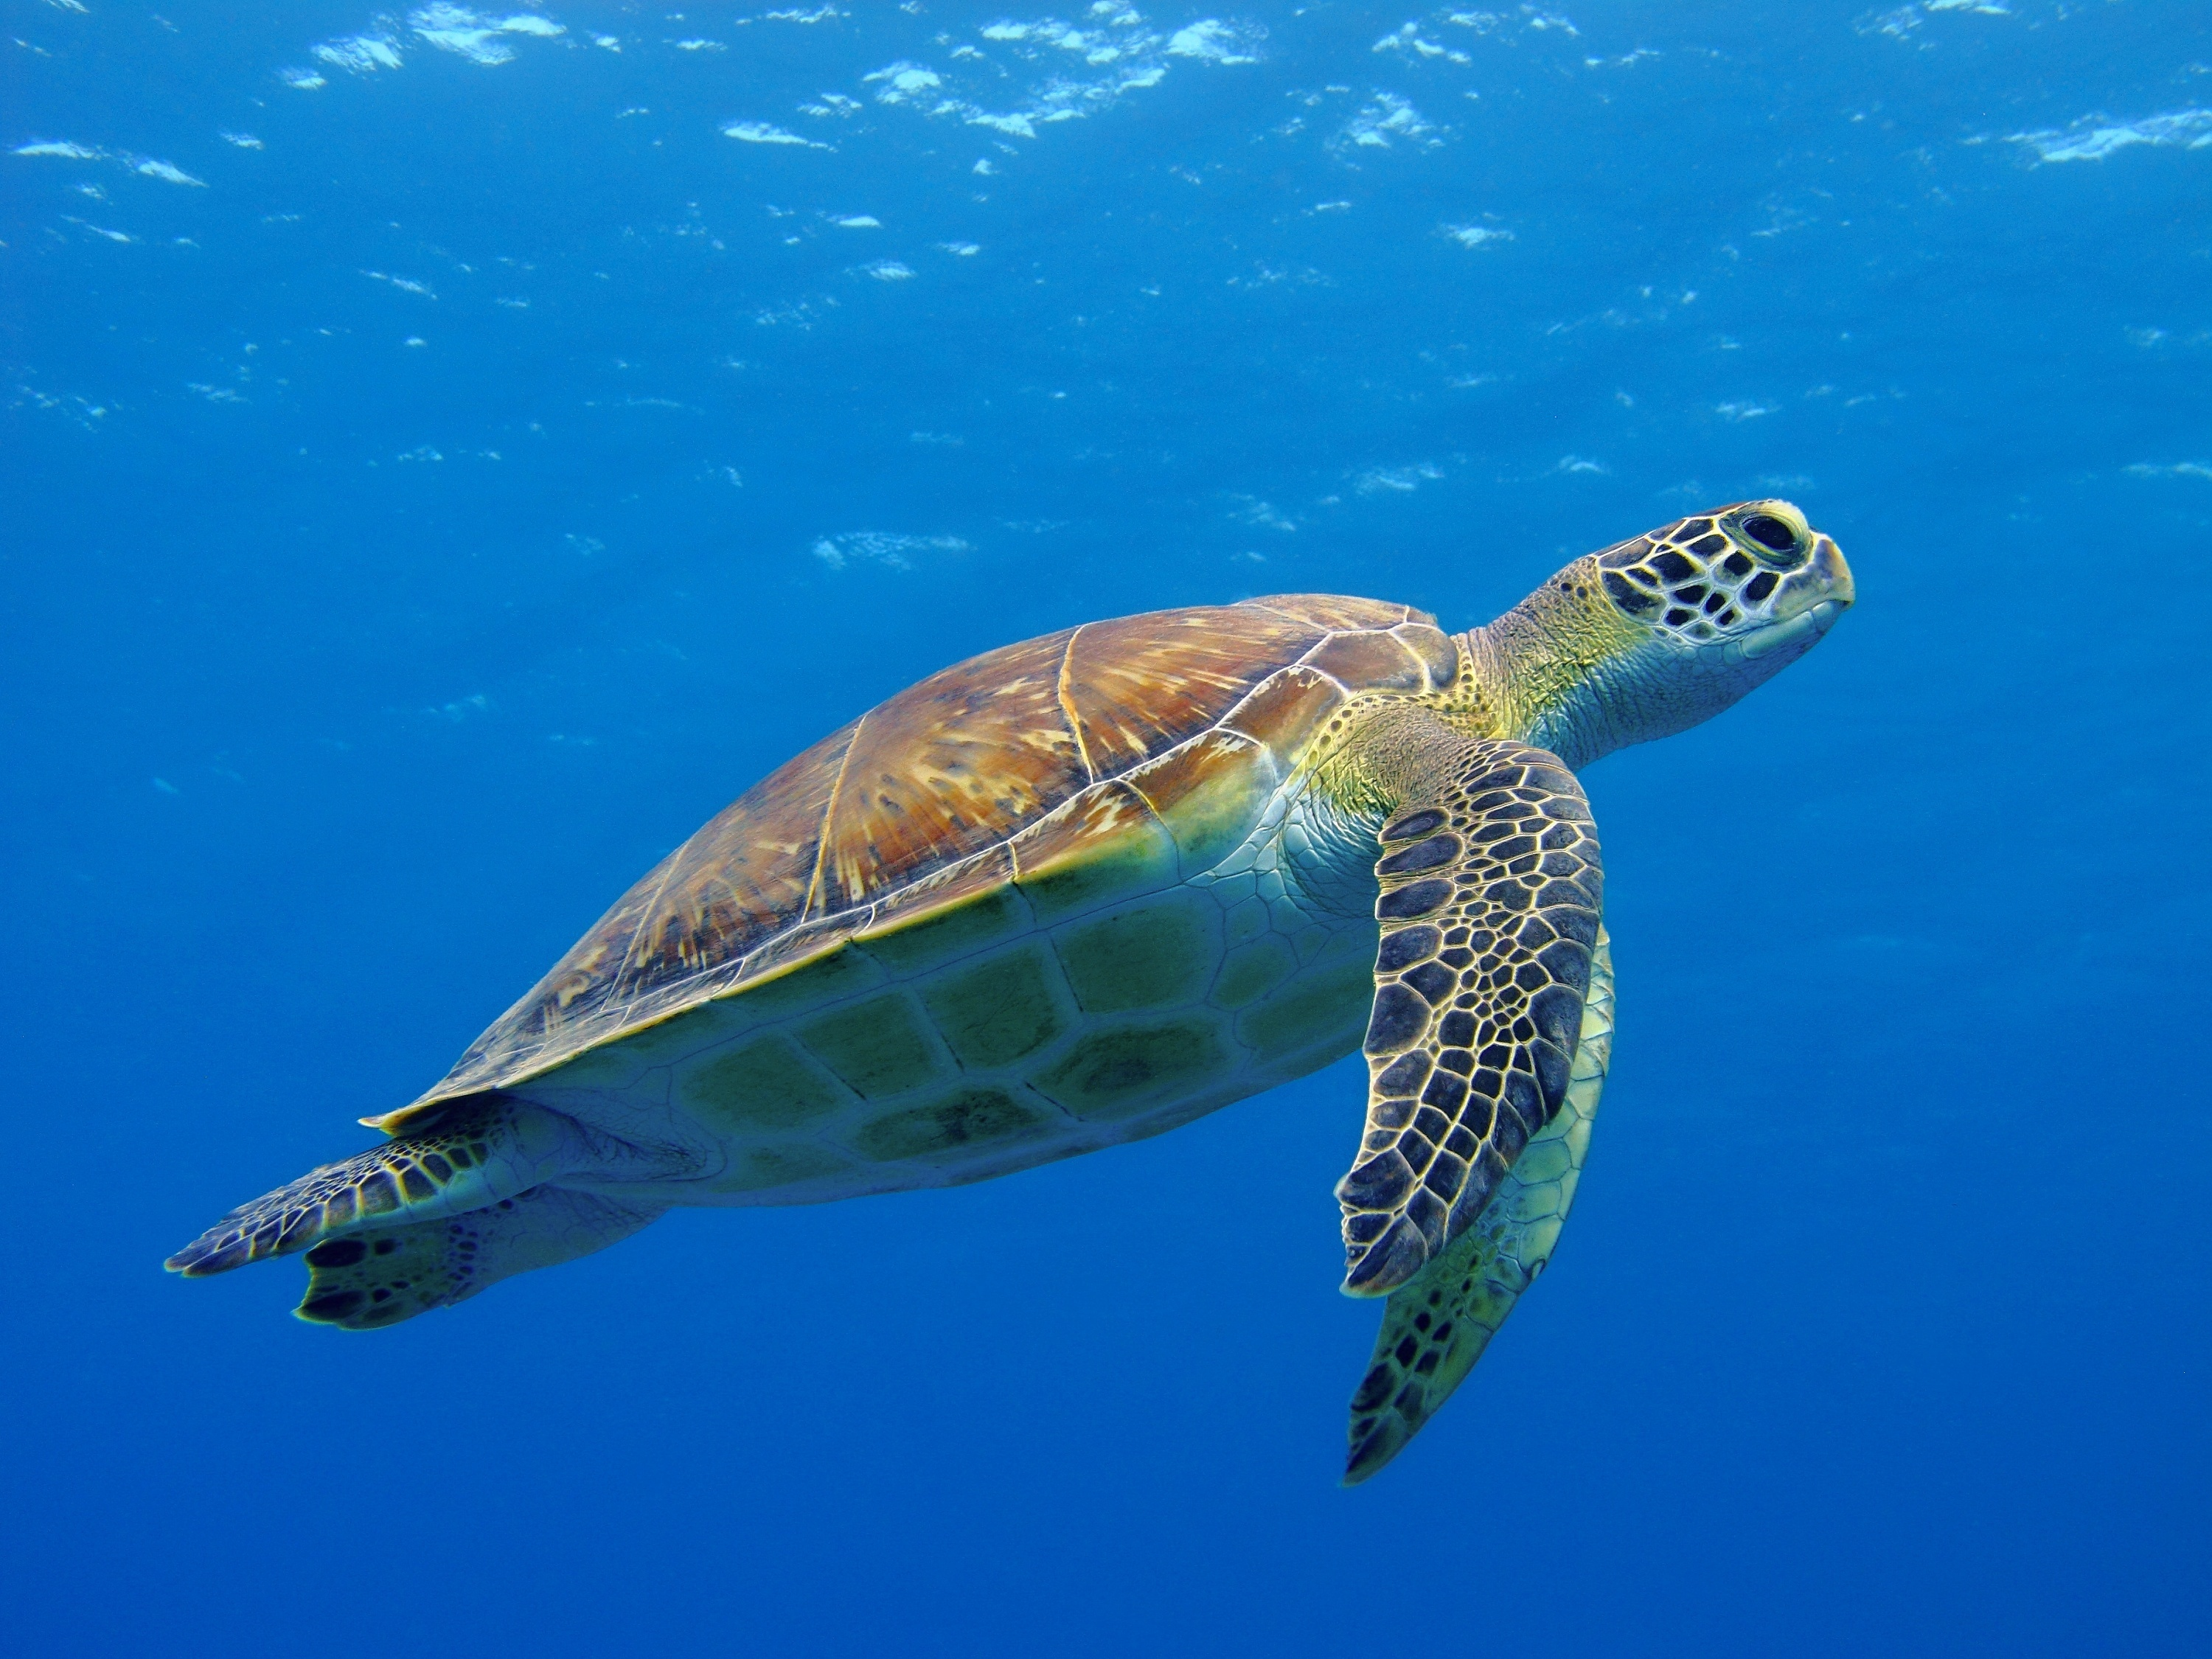 Researchers examining fossils in Alabama discovered a new species of sea turtle from the Late Cretaceous epoch.